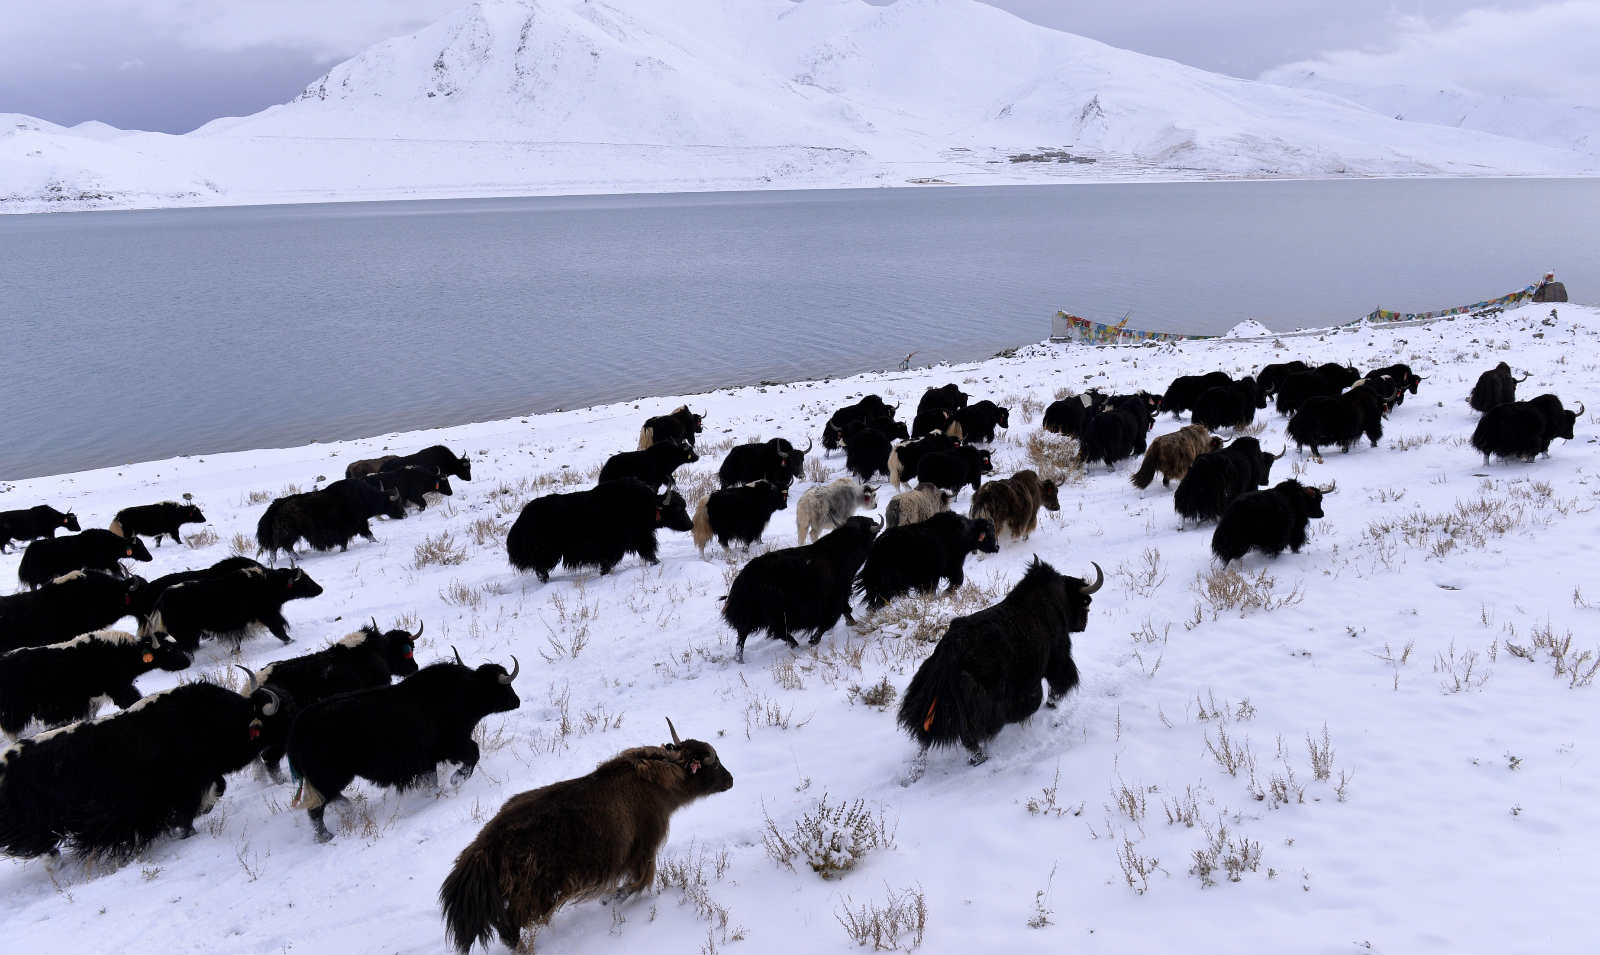 Tibetan plateau as clean as North Pole despite environmental woes